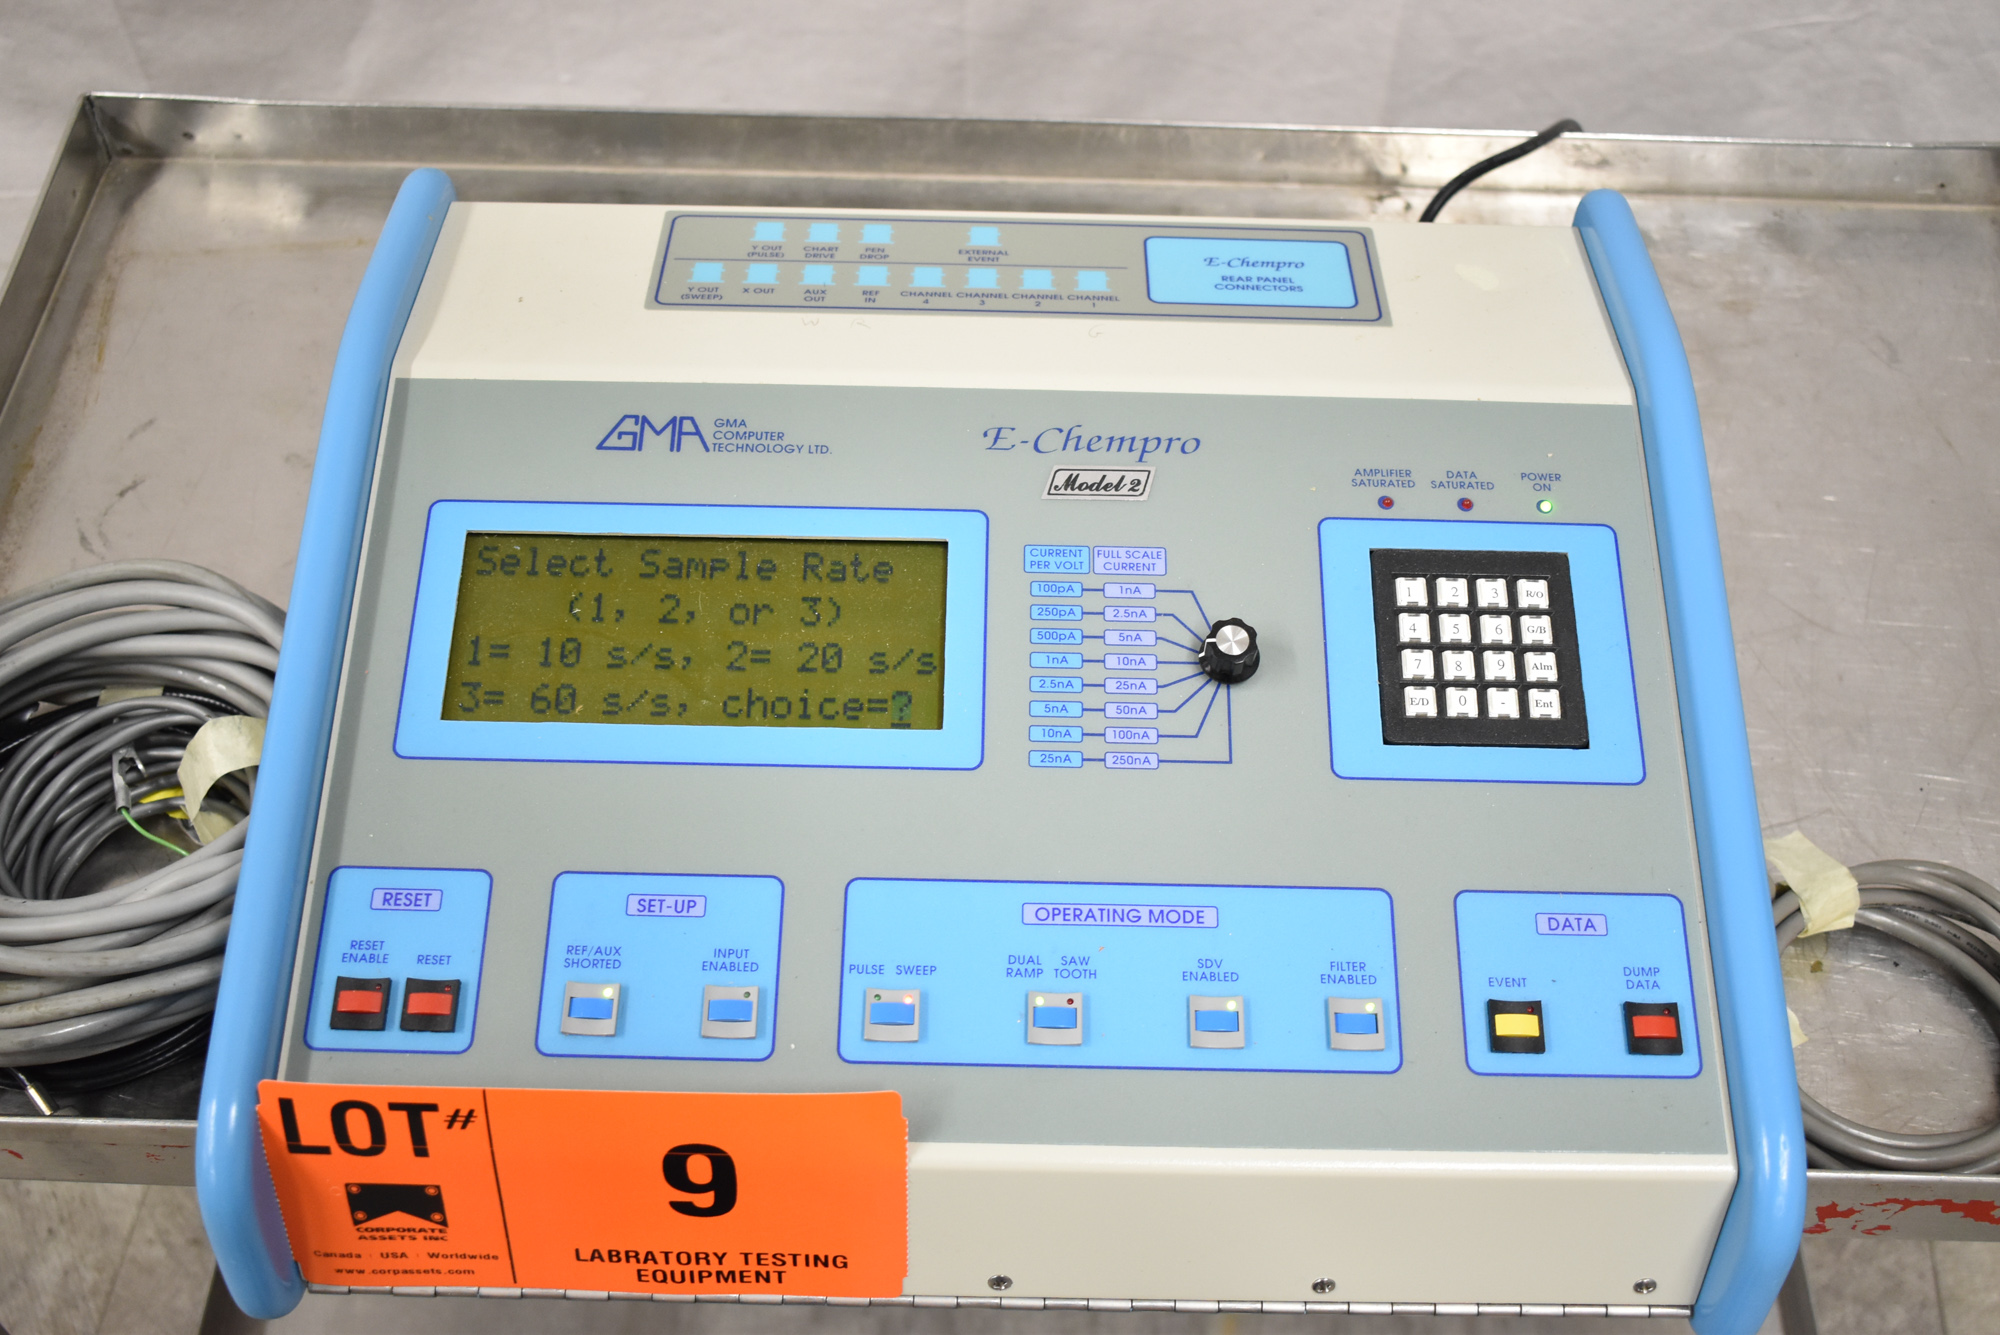 GMA E-CHEMPRO 2/110/60 HIGH SPEED SAMPLER WITH ATEN UC-232A USB TO SERIAL CONVERTER, S/N: 0026 [$